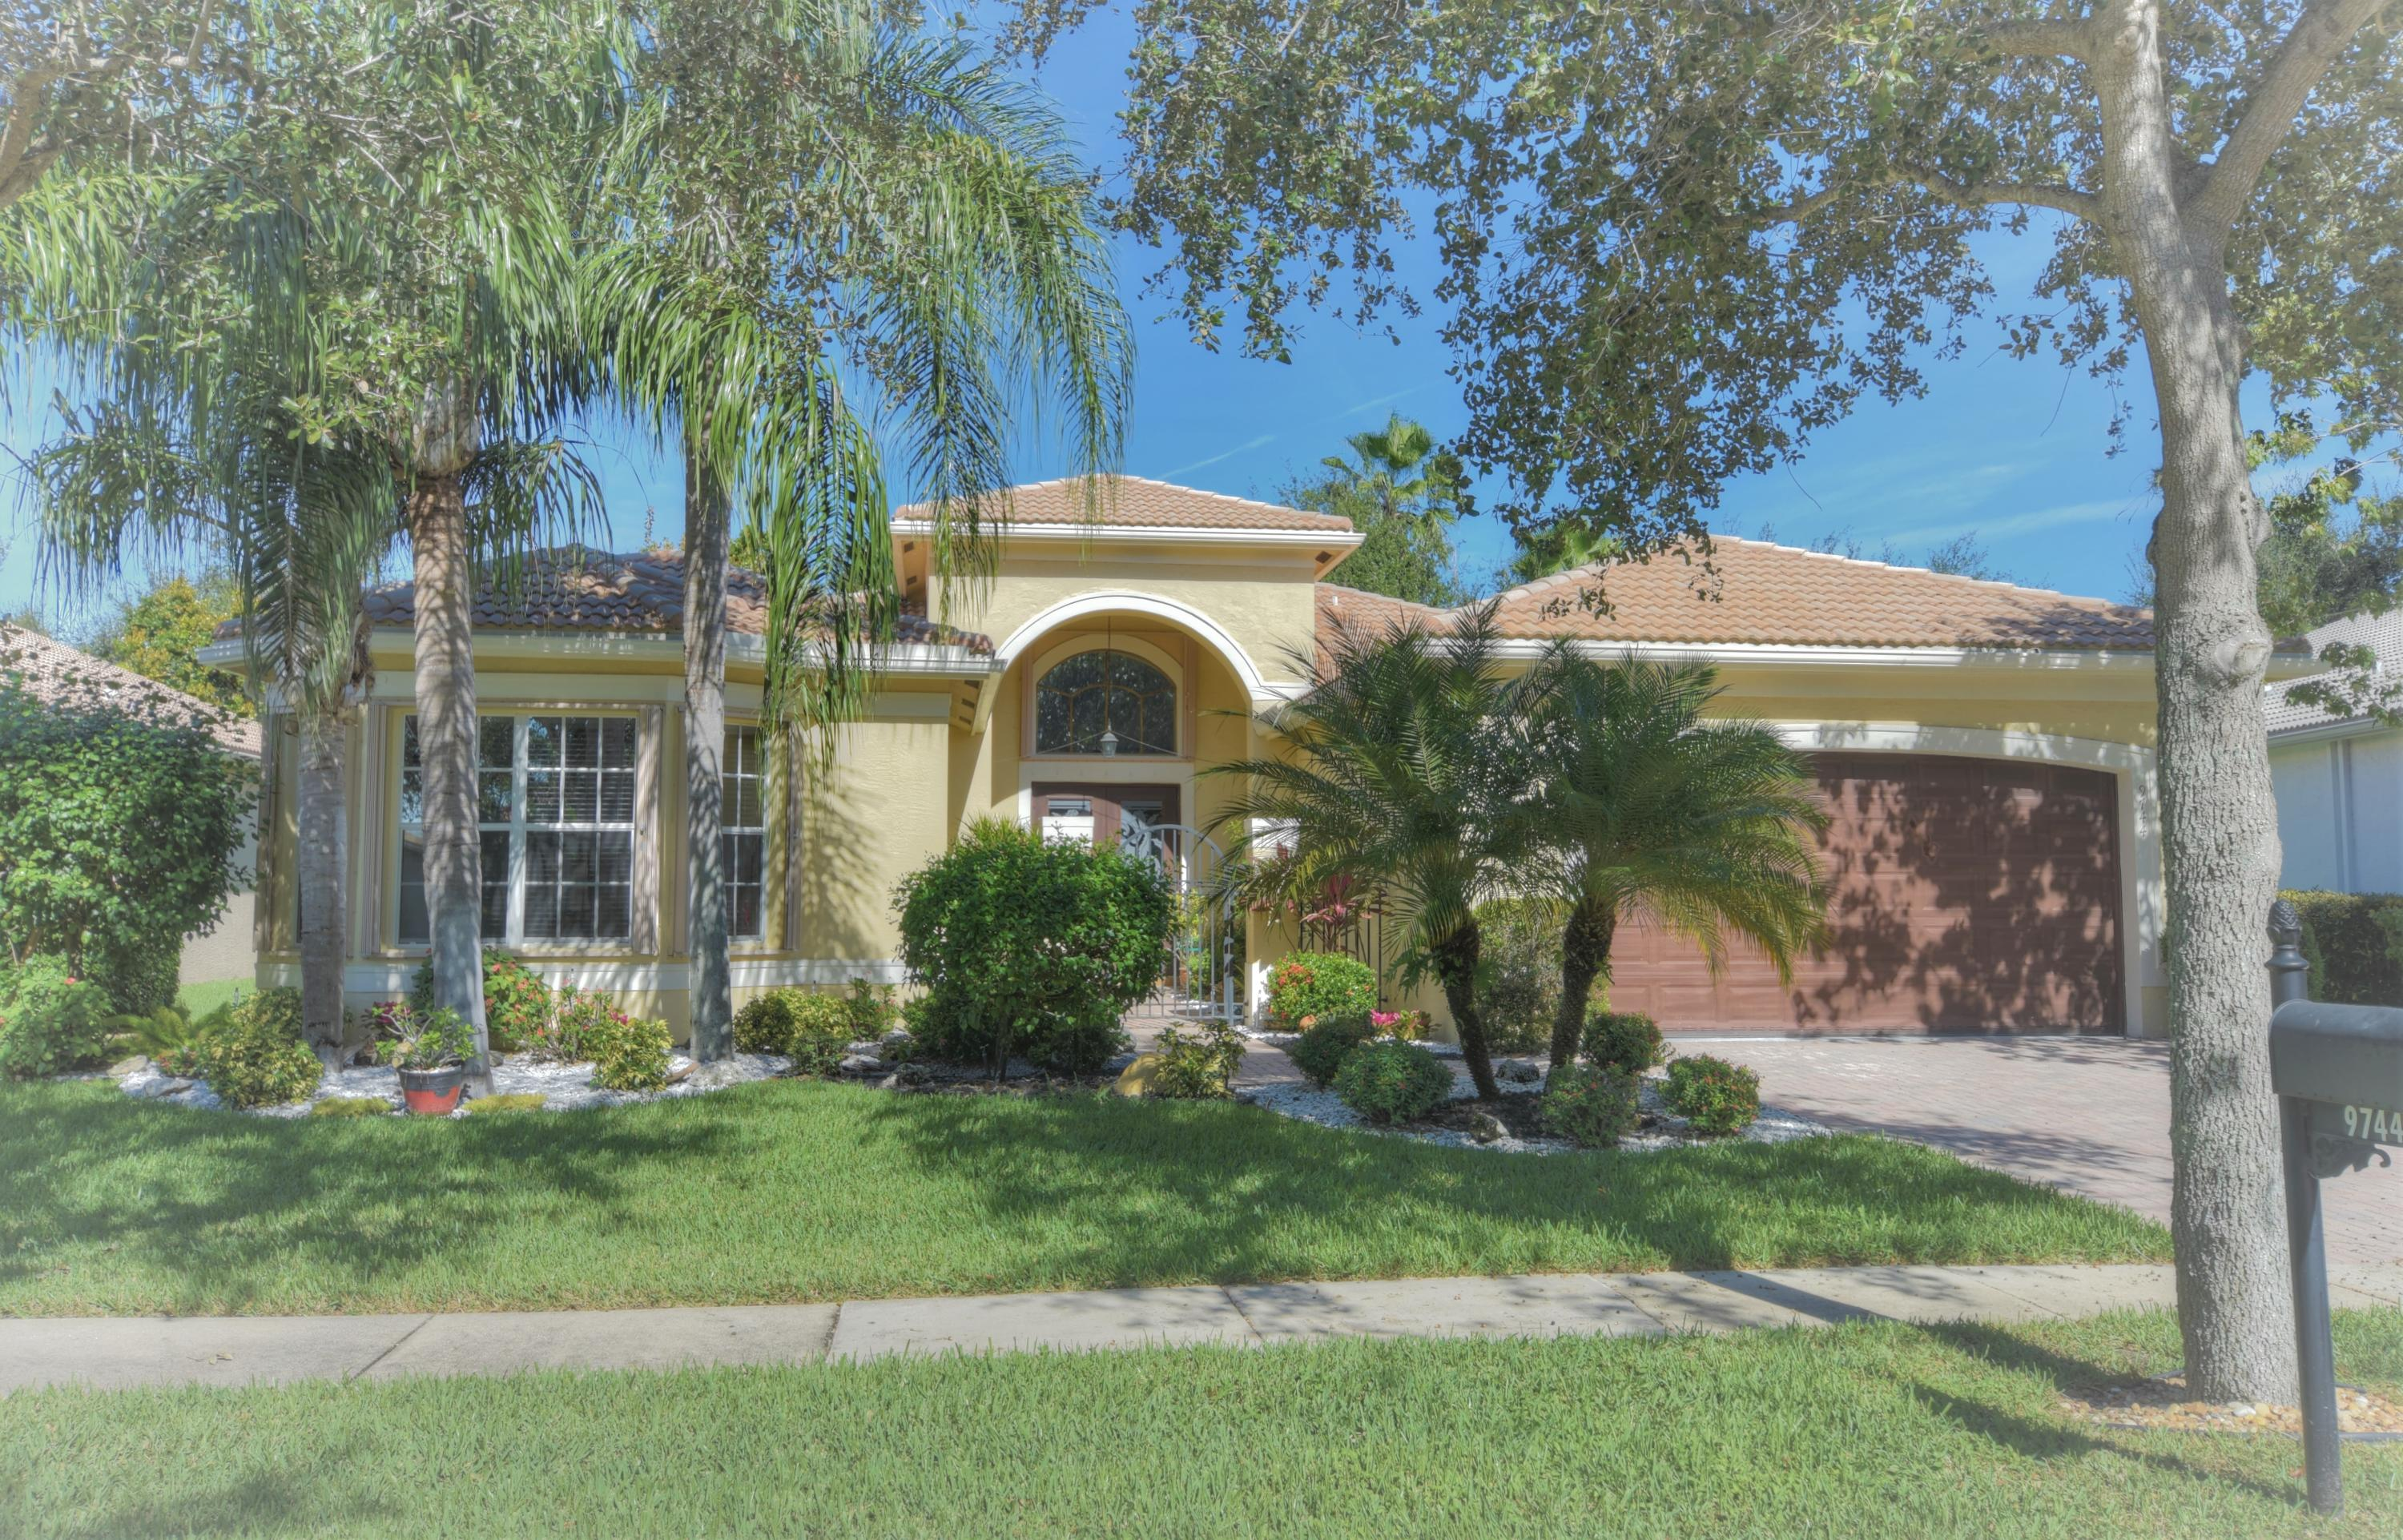 VALENCIA PALMS home 9744 Baywood Park Lane Delray Beach FL 33446